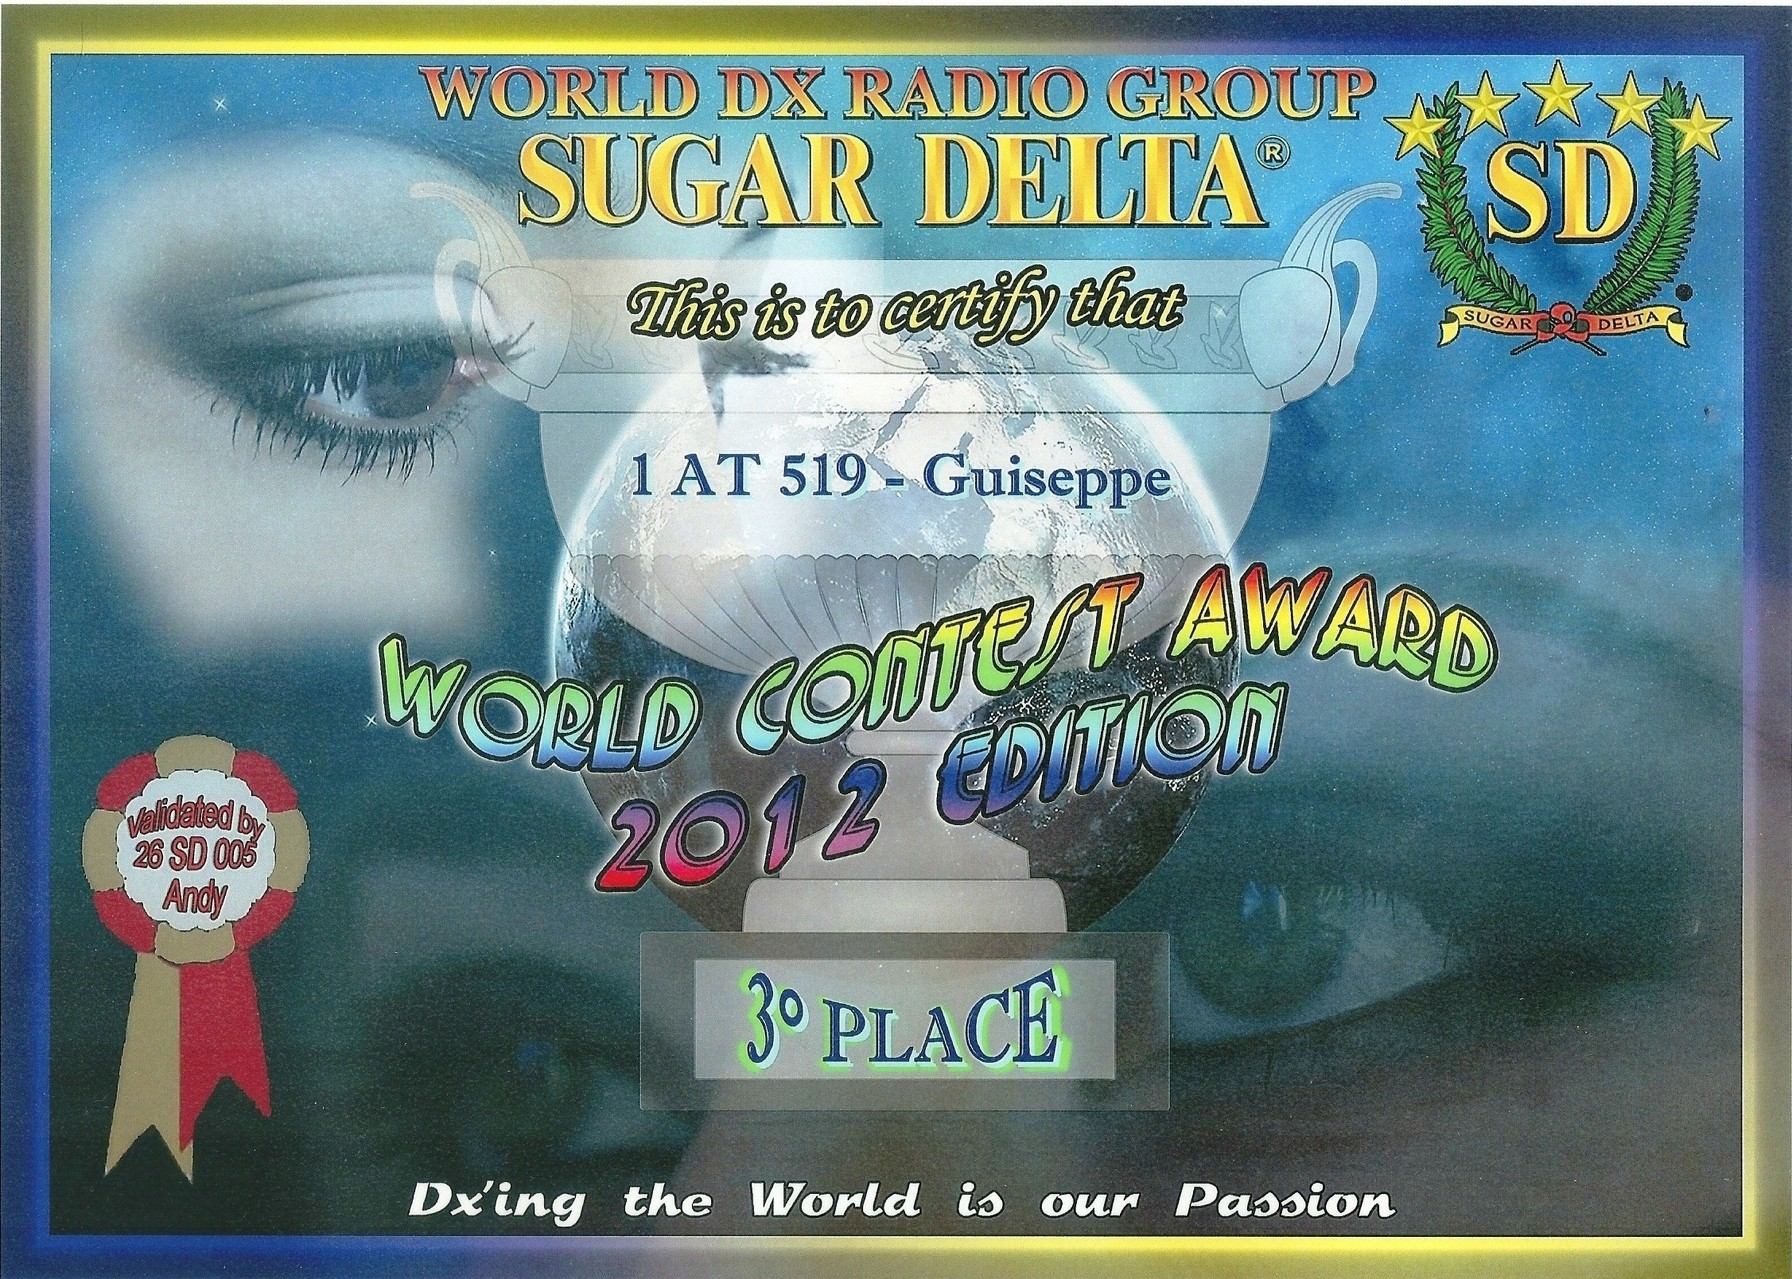 AWARD WORLD CONTEST SUGAR DELTA 2012